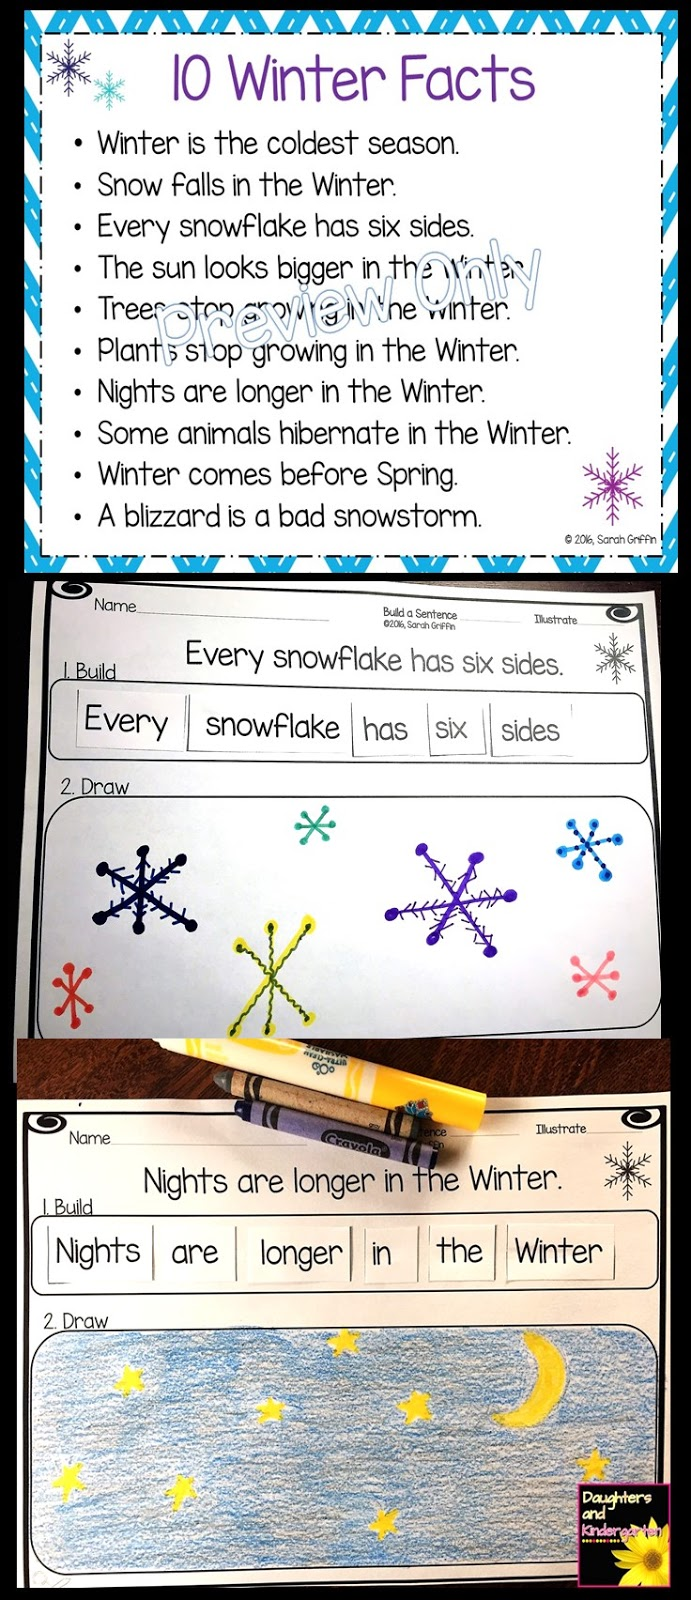 Daughters And Kindergarten 10 Winter Facts For Kids